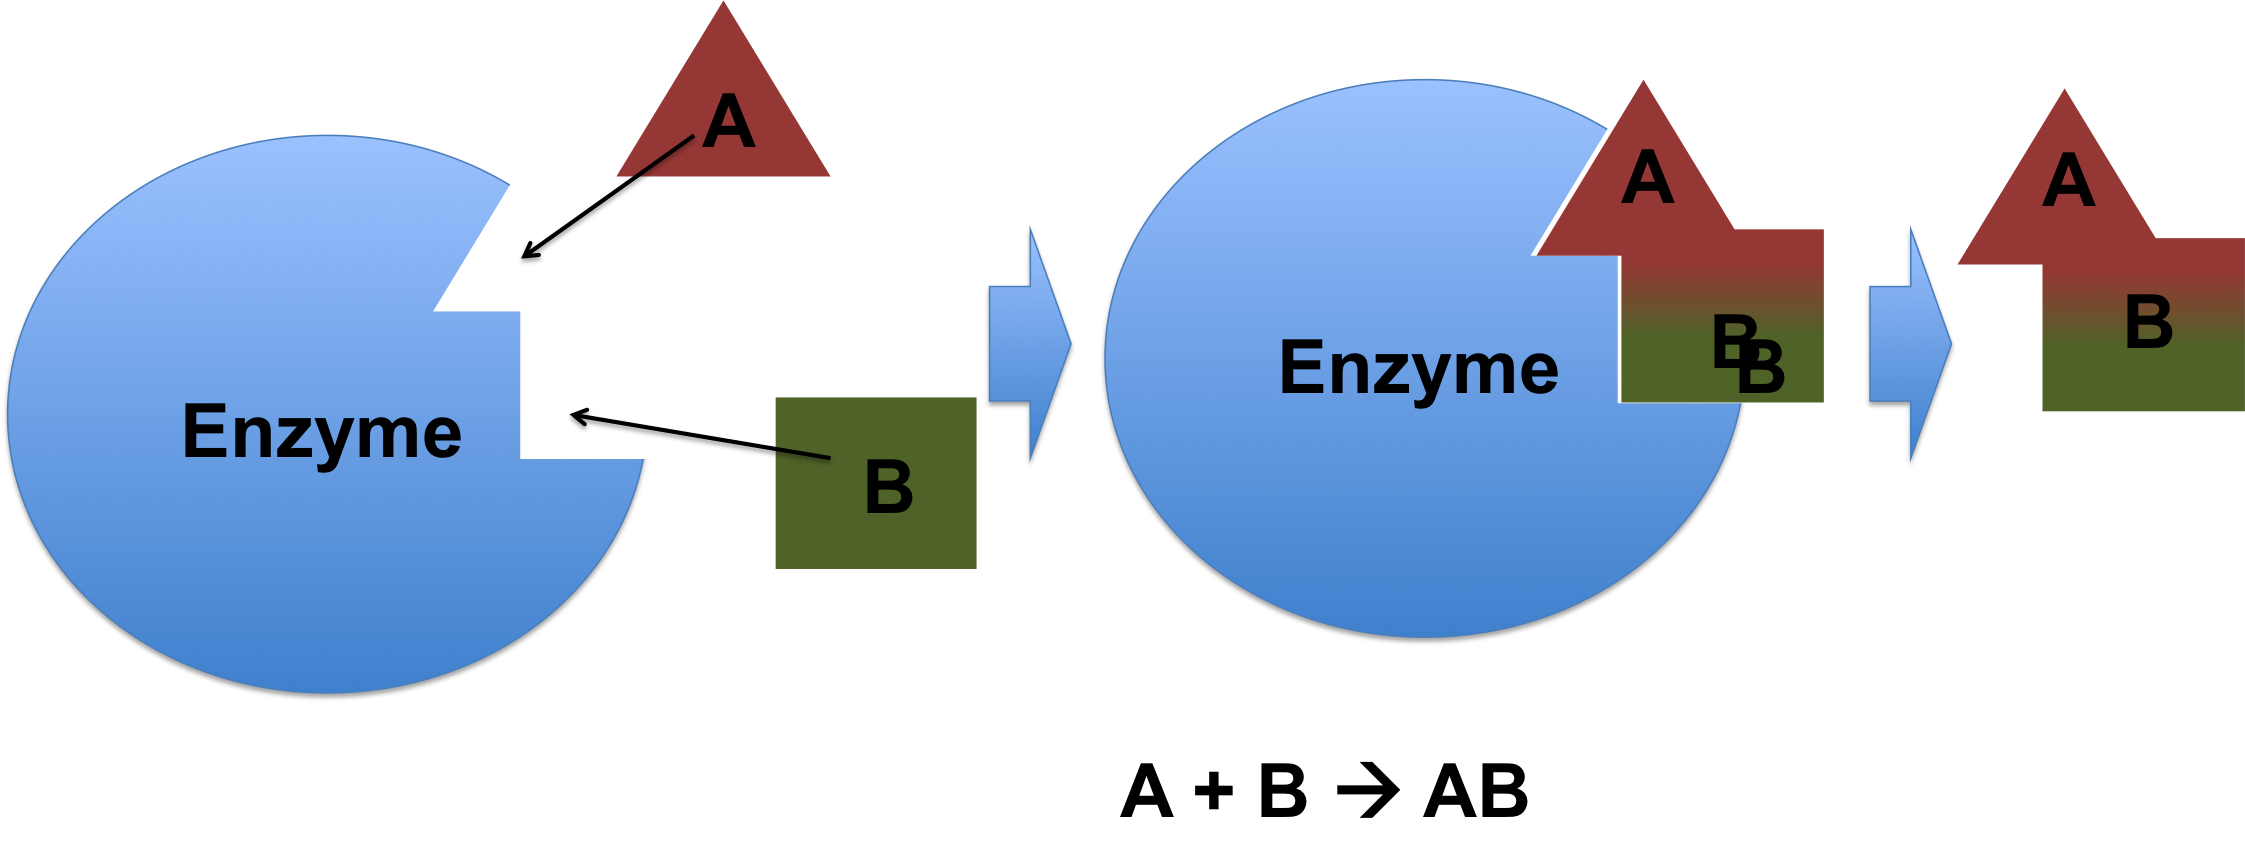 enzymes and life processes All life processes require biochemical reactions could not proceed fast enough for life to be possible enzymes lower the energy required samples of biology.